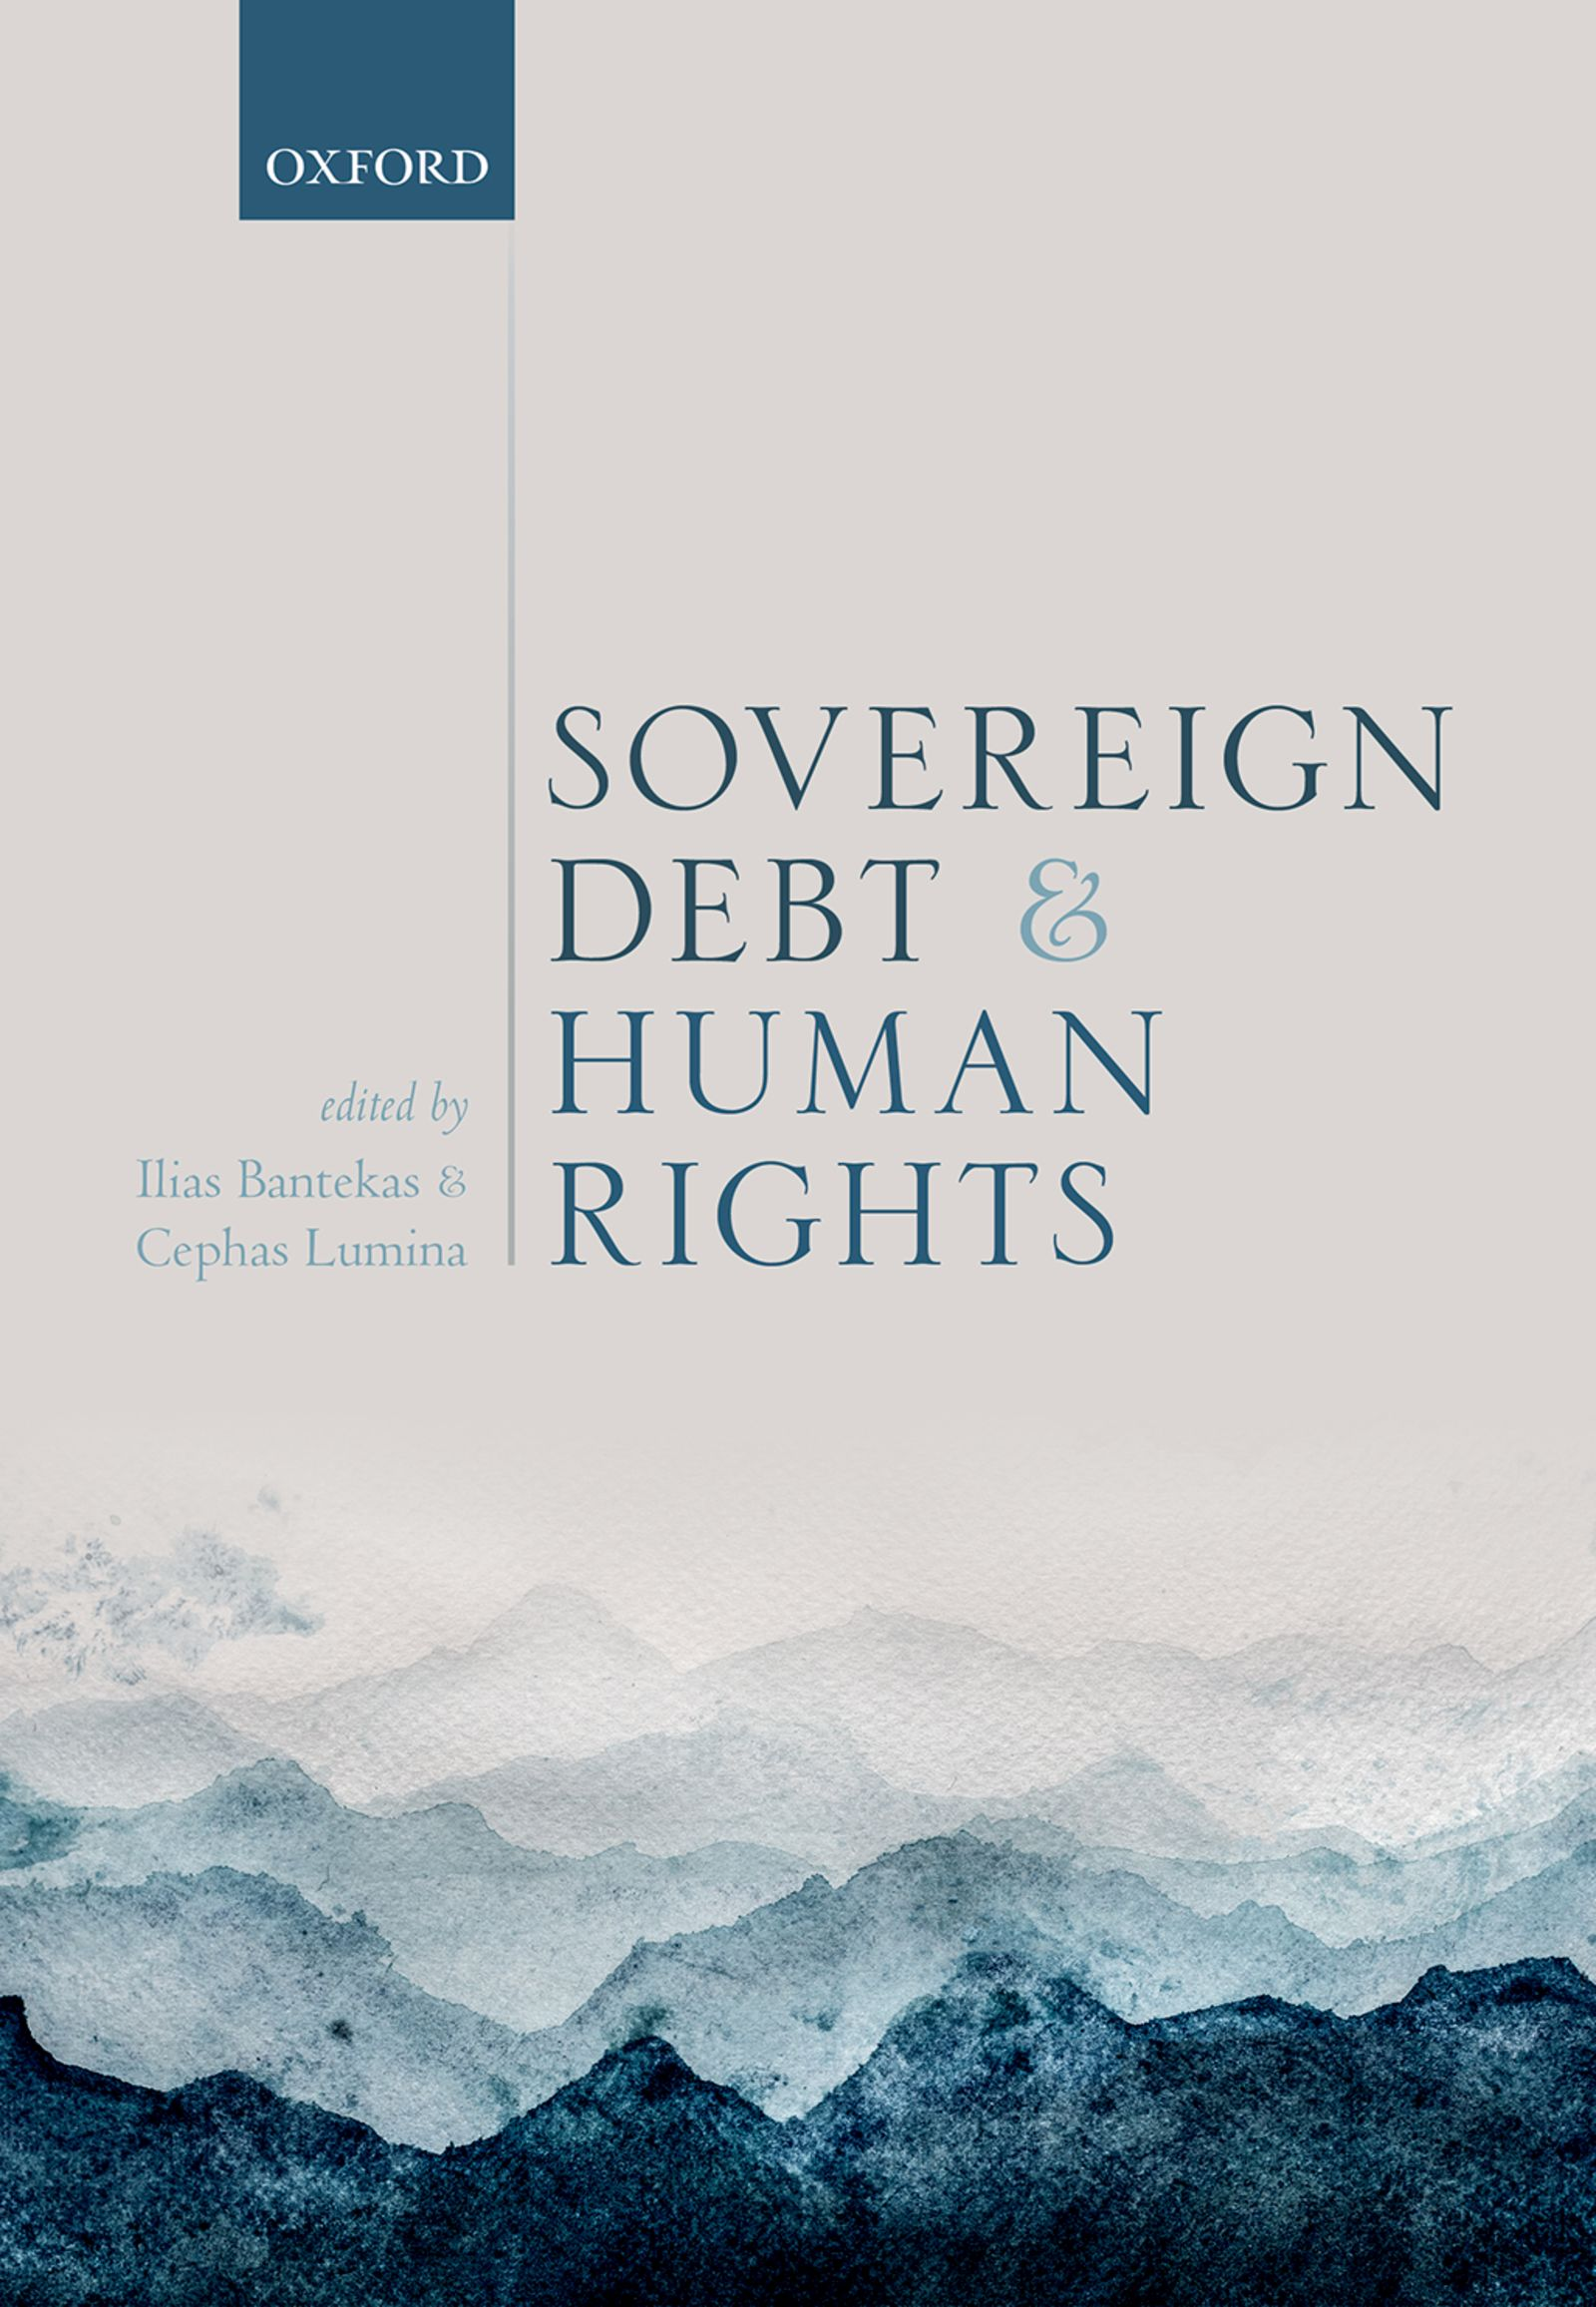 Download Ebook Sovereign Debt and Human Rights by Ilias Bantekas Pdf